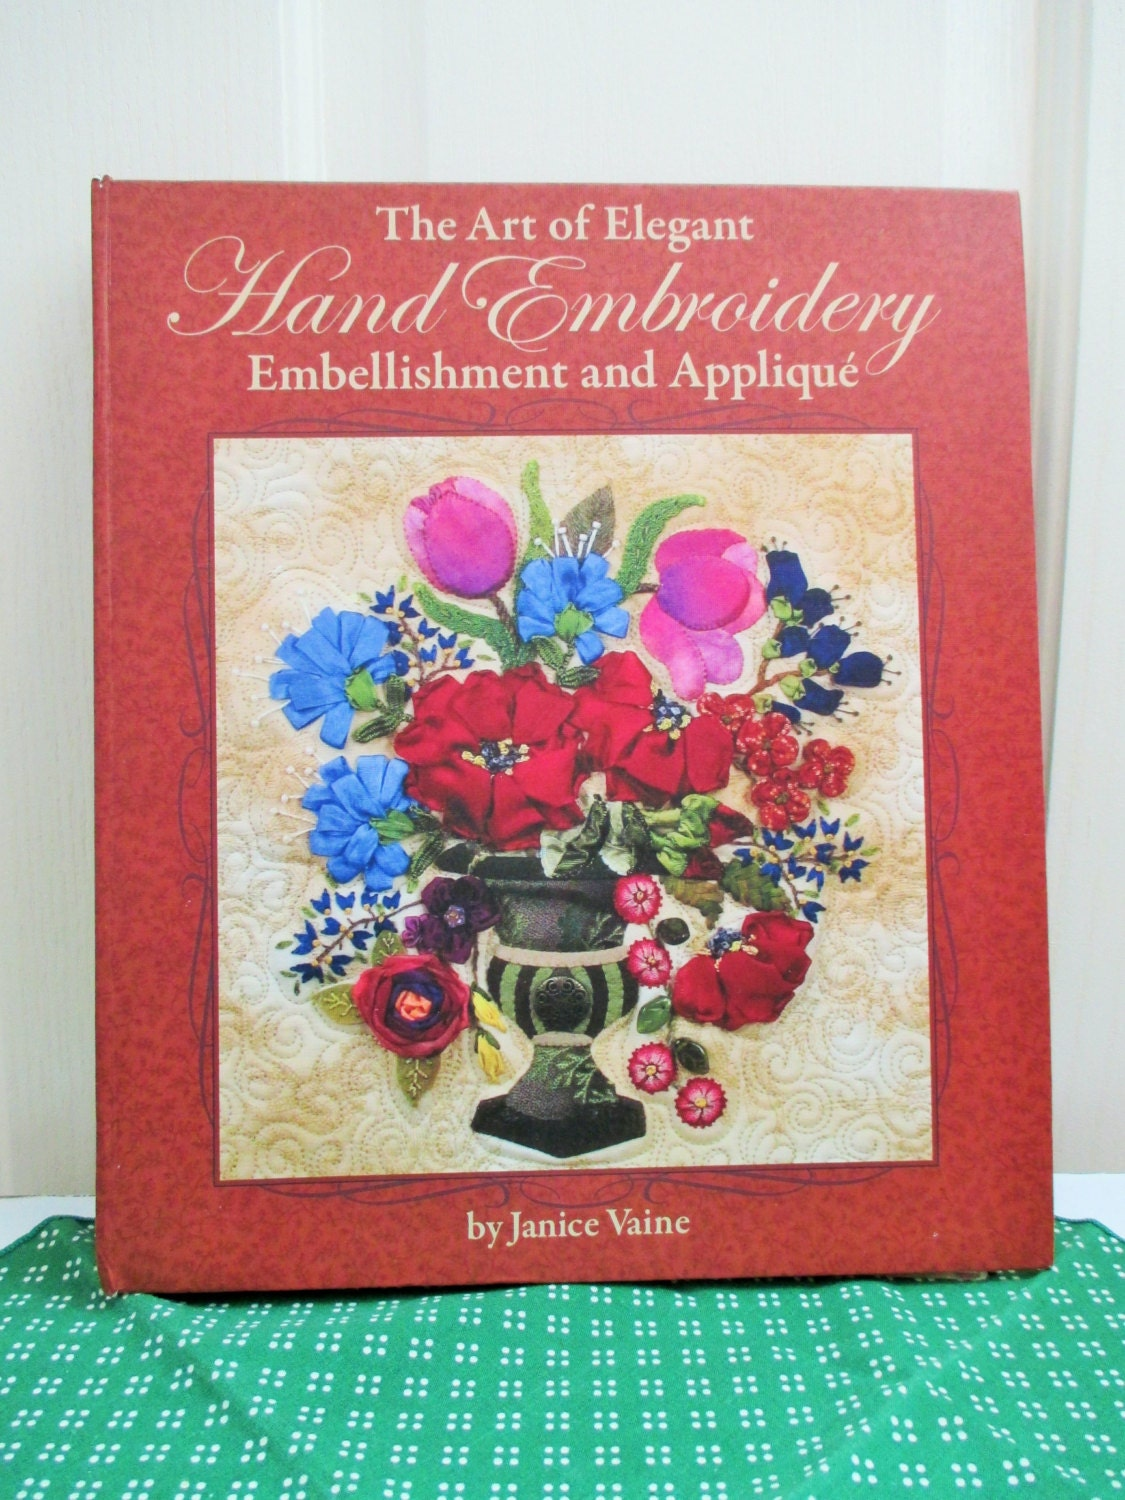 Embroidery Book Art Of Elegant Hand Embroidery Stitches